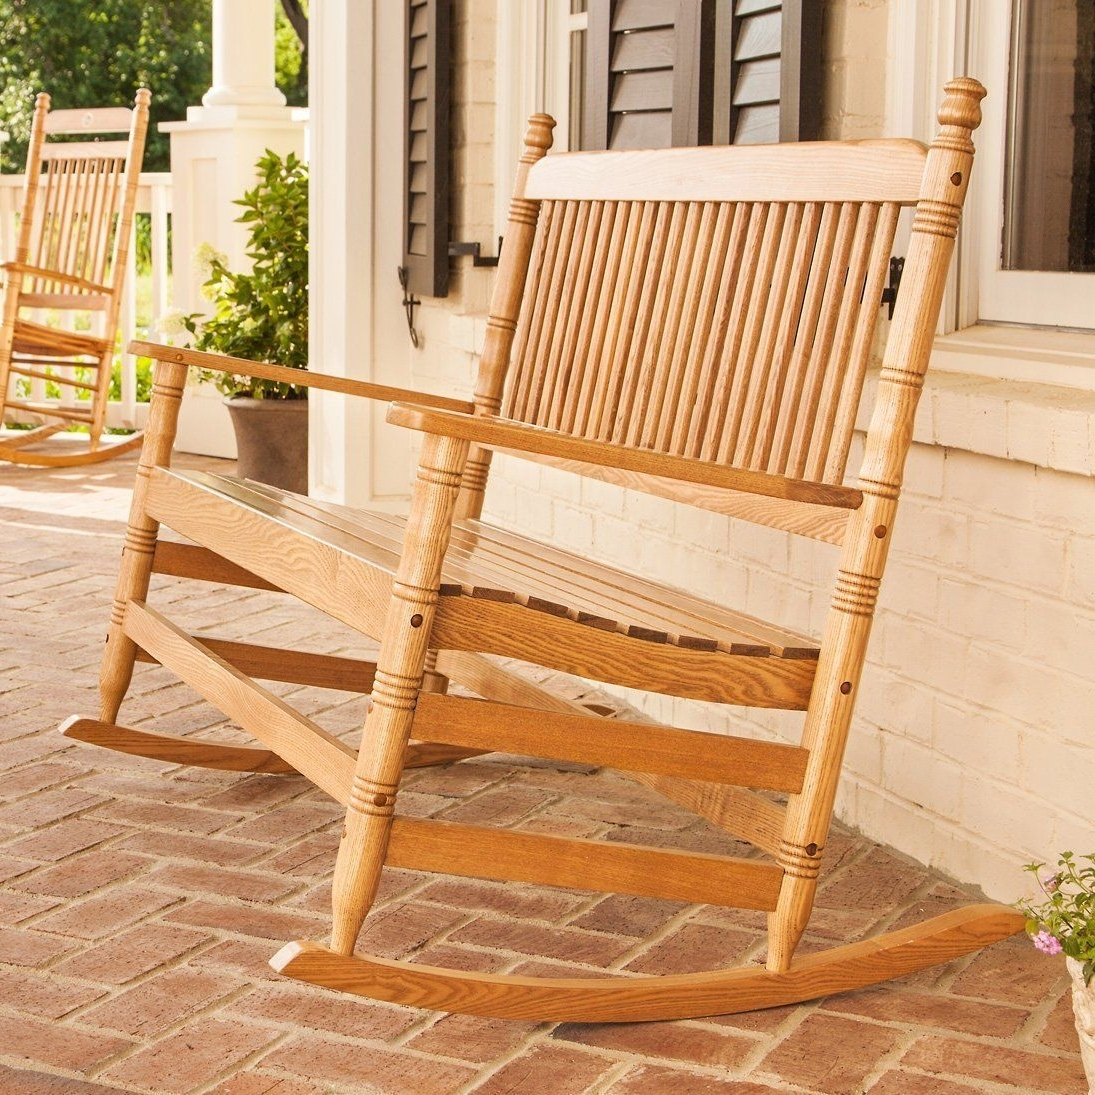 Rocking Chairs At Cracker Barrel Regarding Recent 4' Oak Double Rocking Chair – From Cracker Barrel – I Need This On (View 12 of 20)